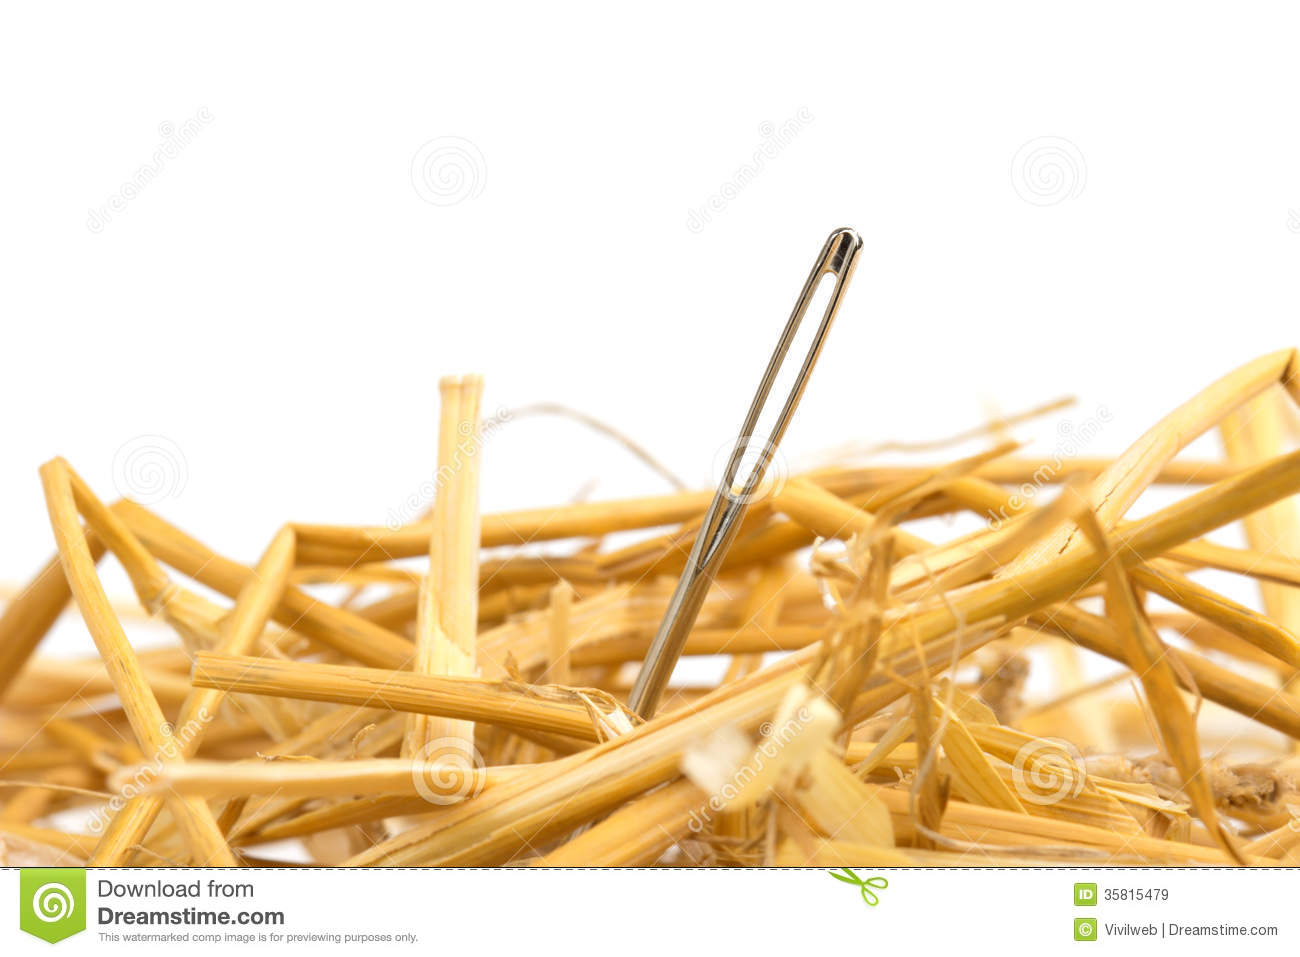 Needle Haystack Stock Photos, Images, & Pictures - 241 Images